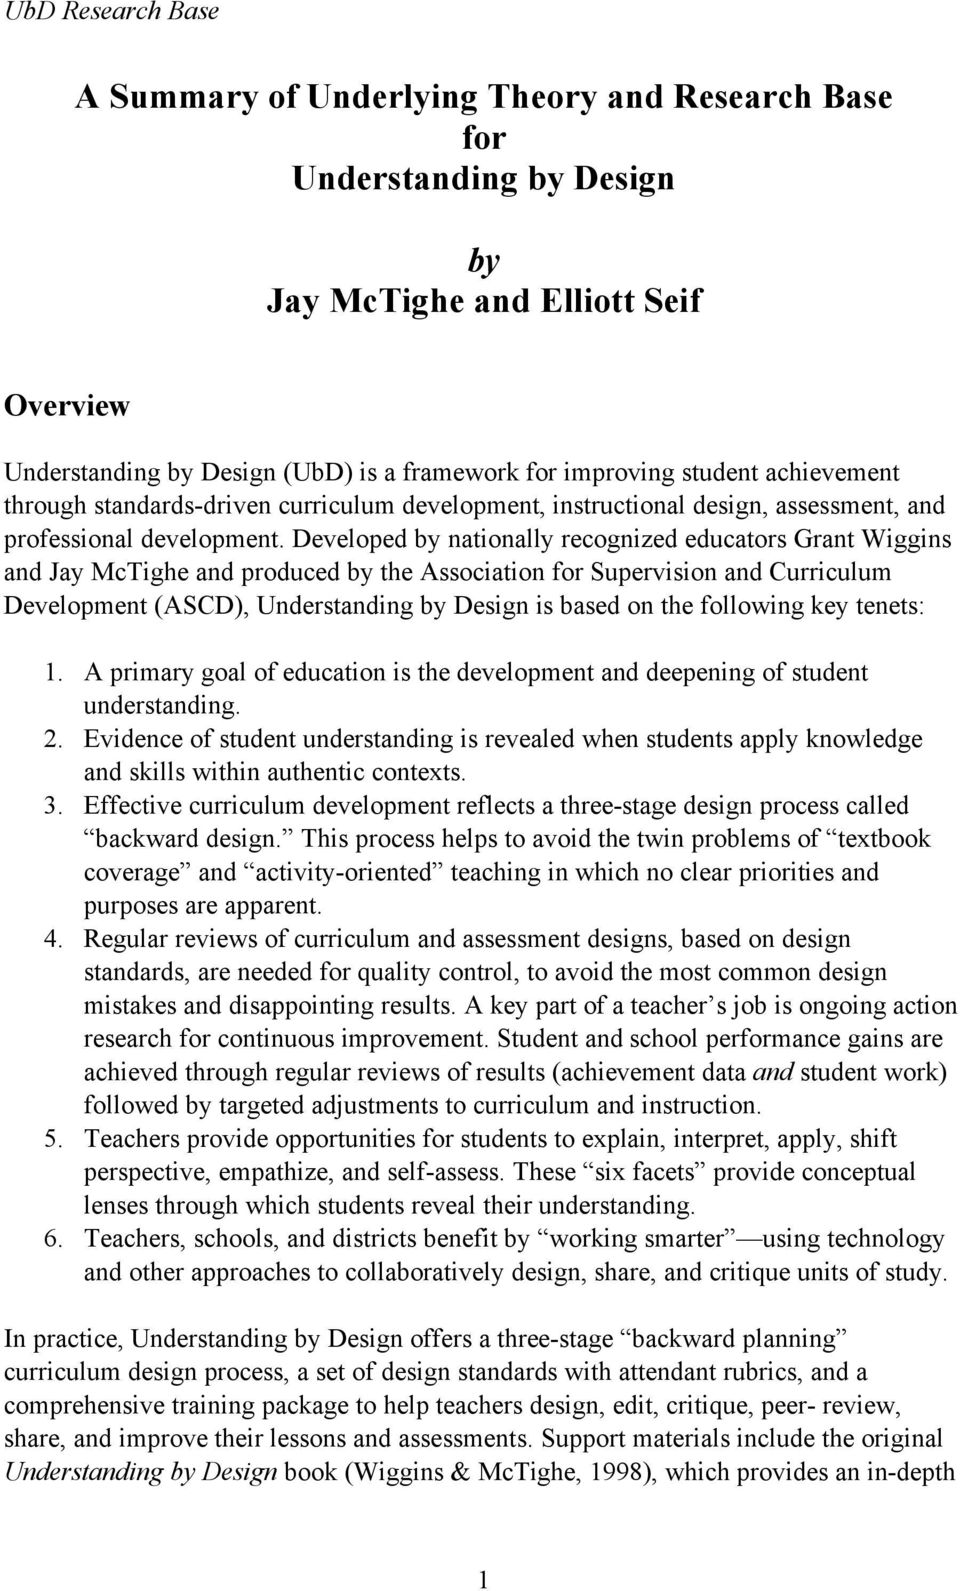 Developed by nationally recognized educators Grant Wiggins and Jay McTighe and produced by the Association for Supervision and Curriculum Development (ASCD), Understanding by Design is based on the